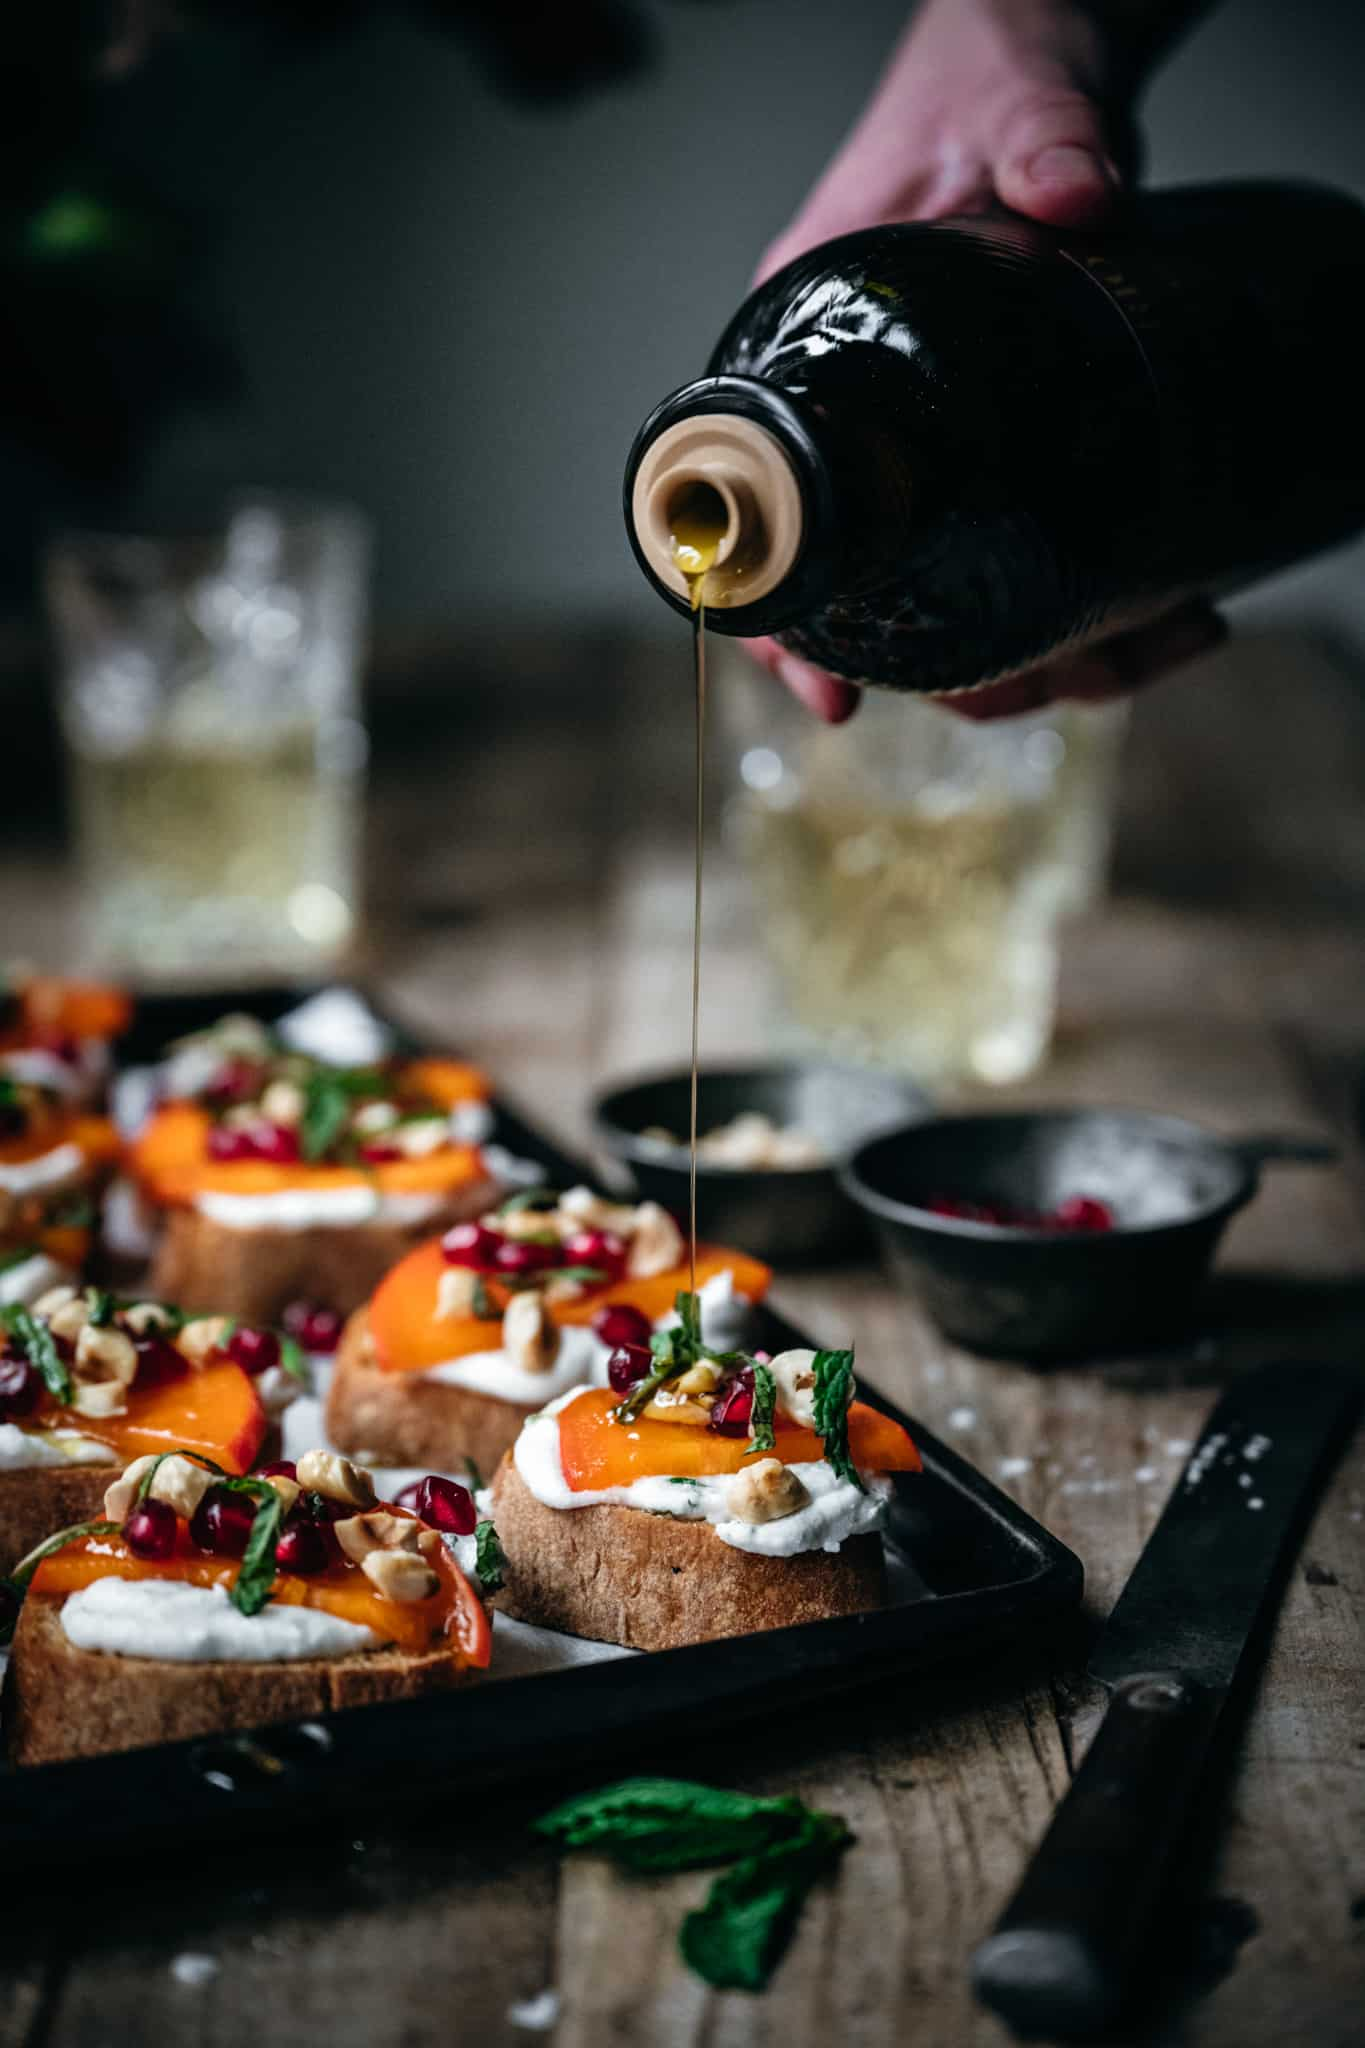 side view of a person drizzling the vegan crostini appetizers with olive oil